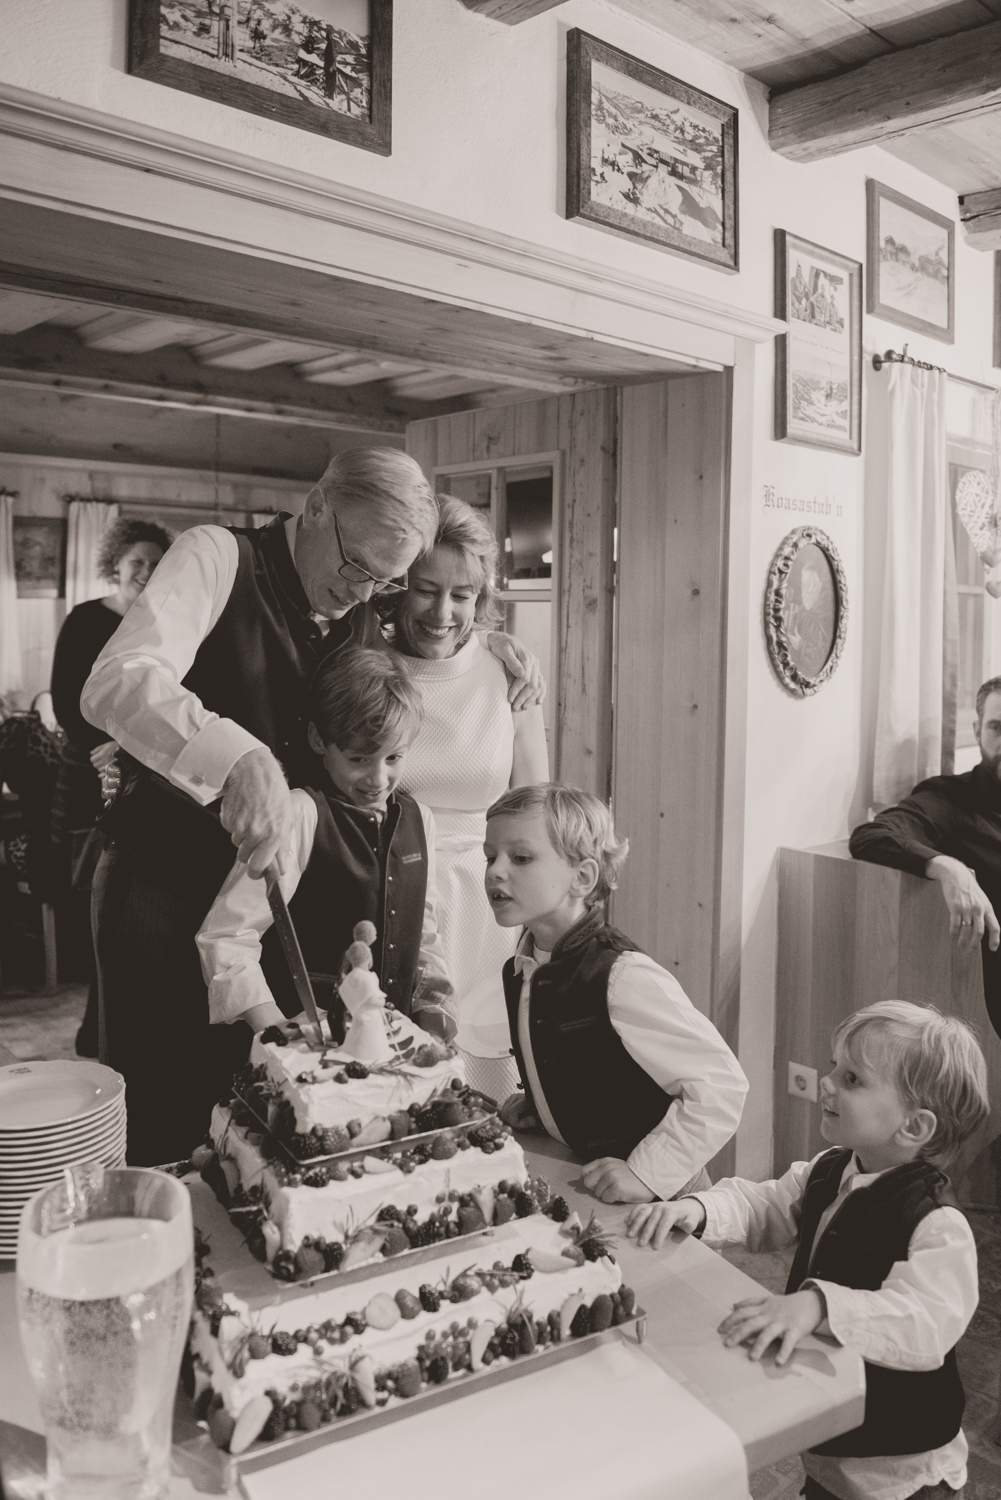 A bride, groom and their children cutting their ski themed wedding cake at their winter wedding in Austria